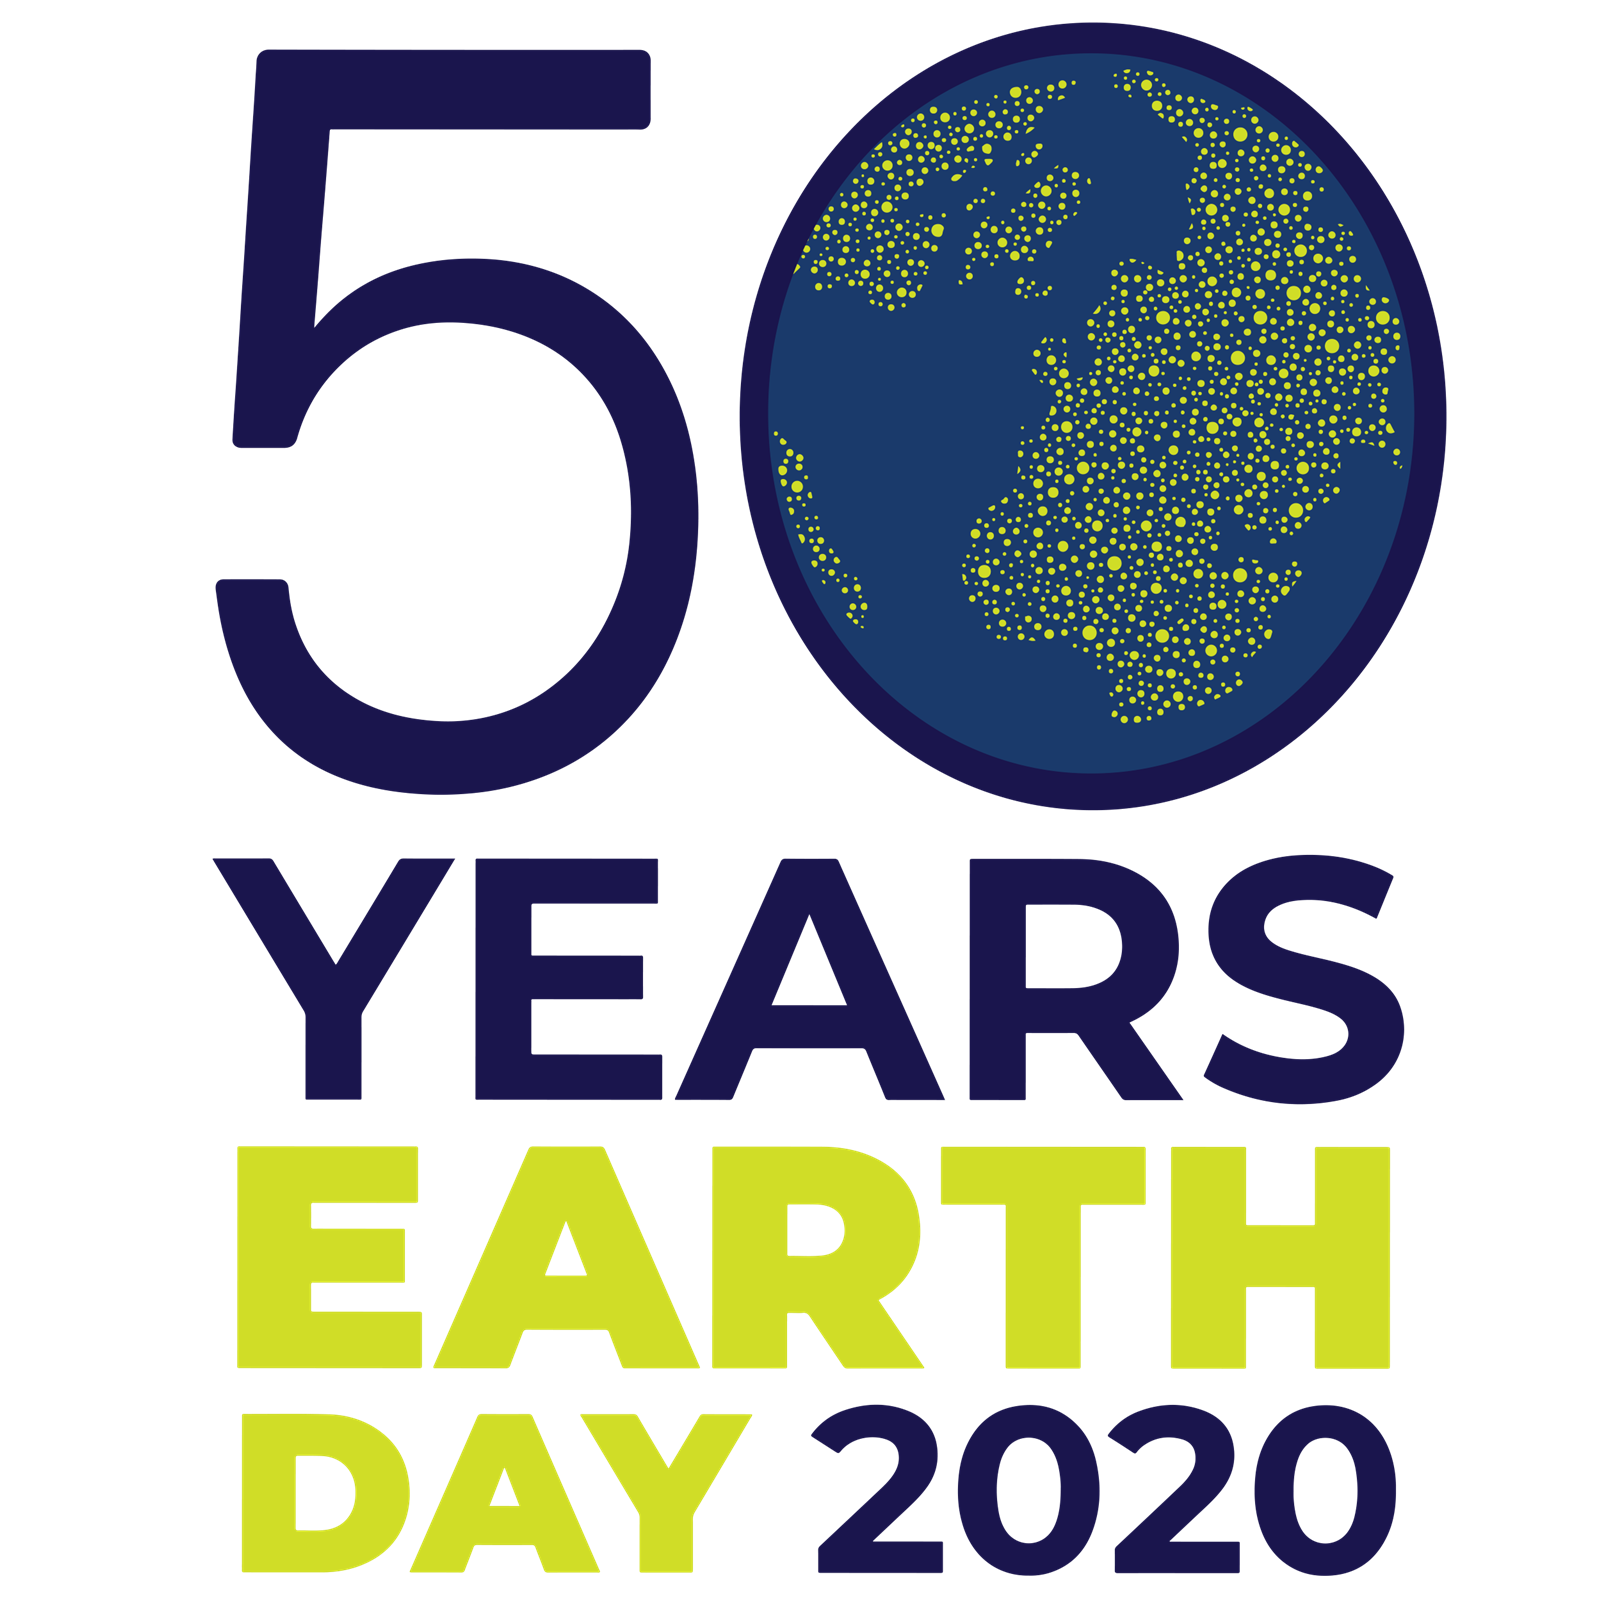 Earth Week 2020 Goes Digital